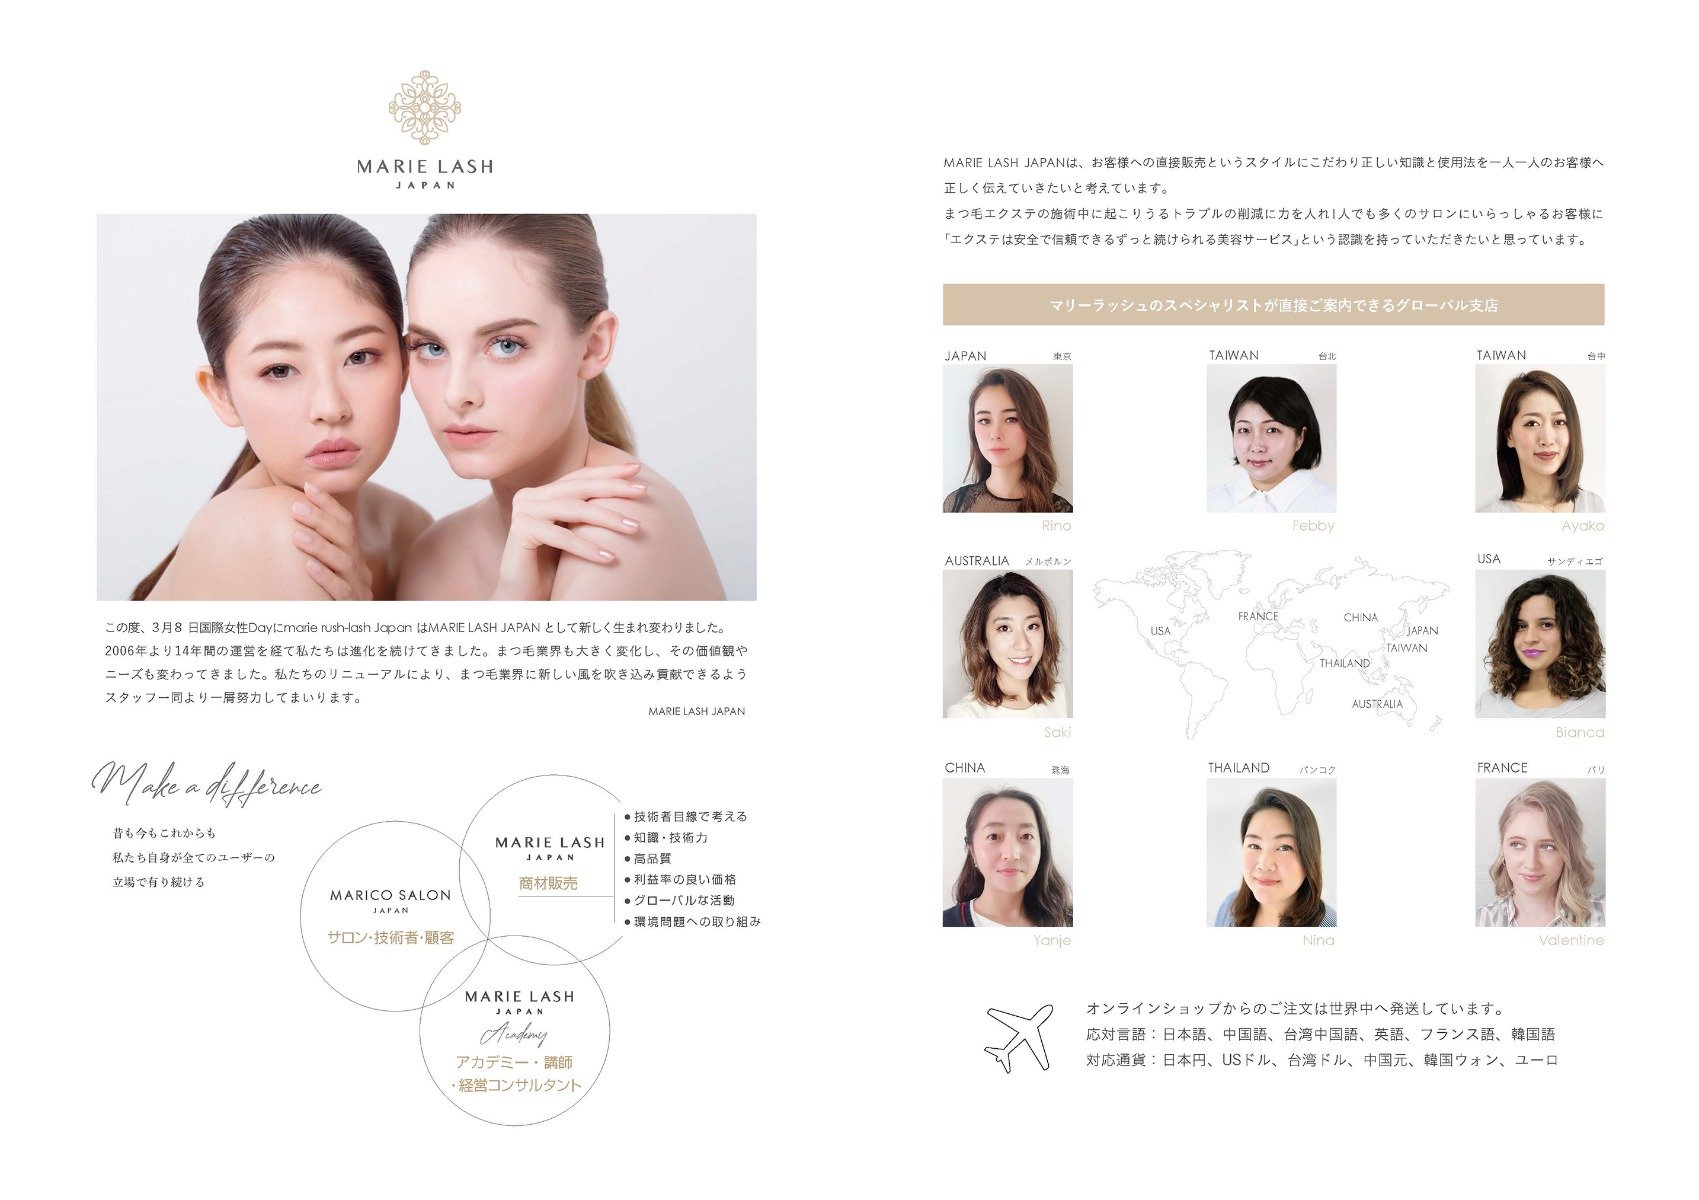 About MARIE LASH JAPAN brand